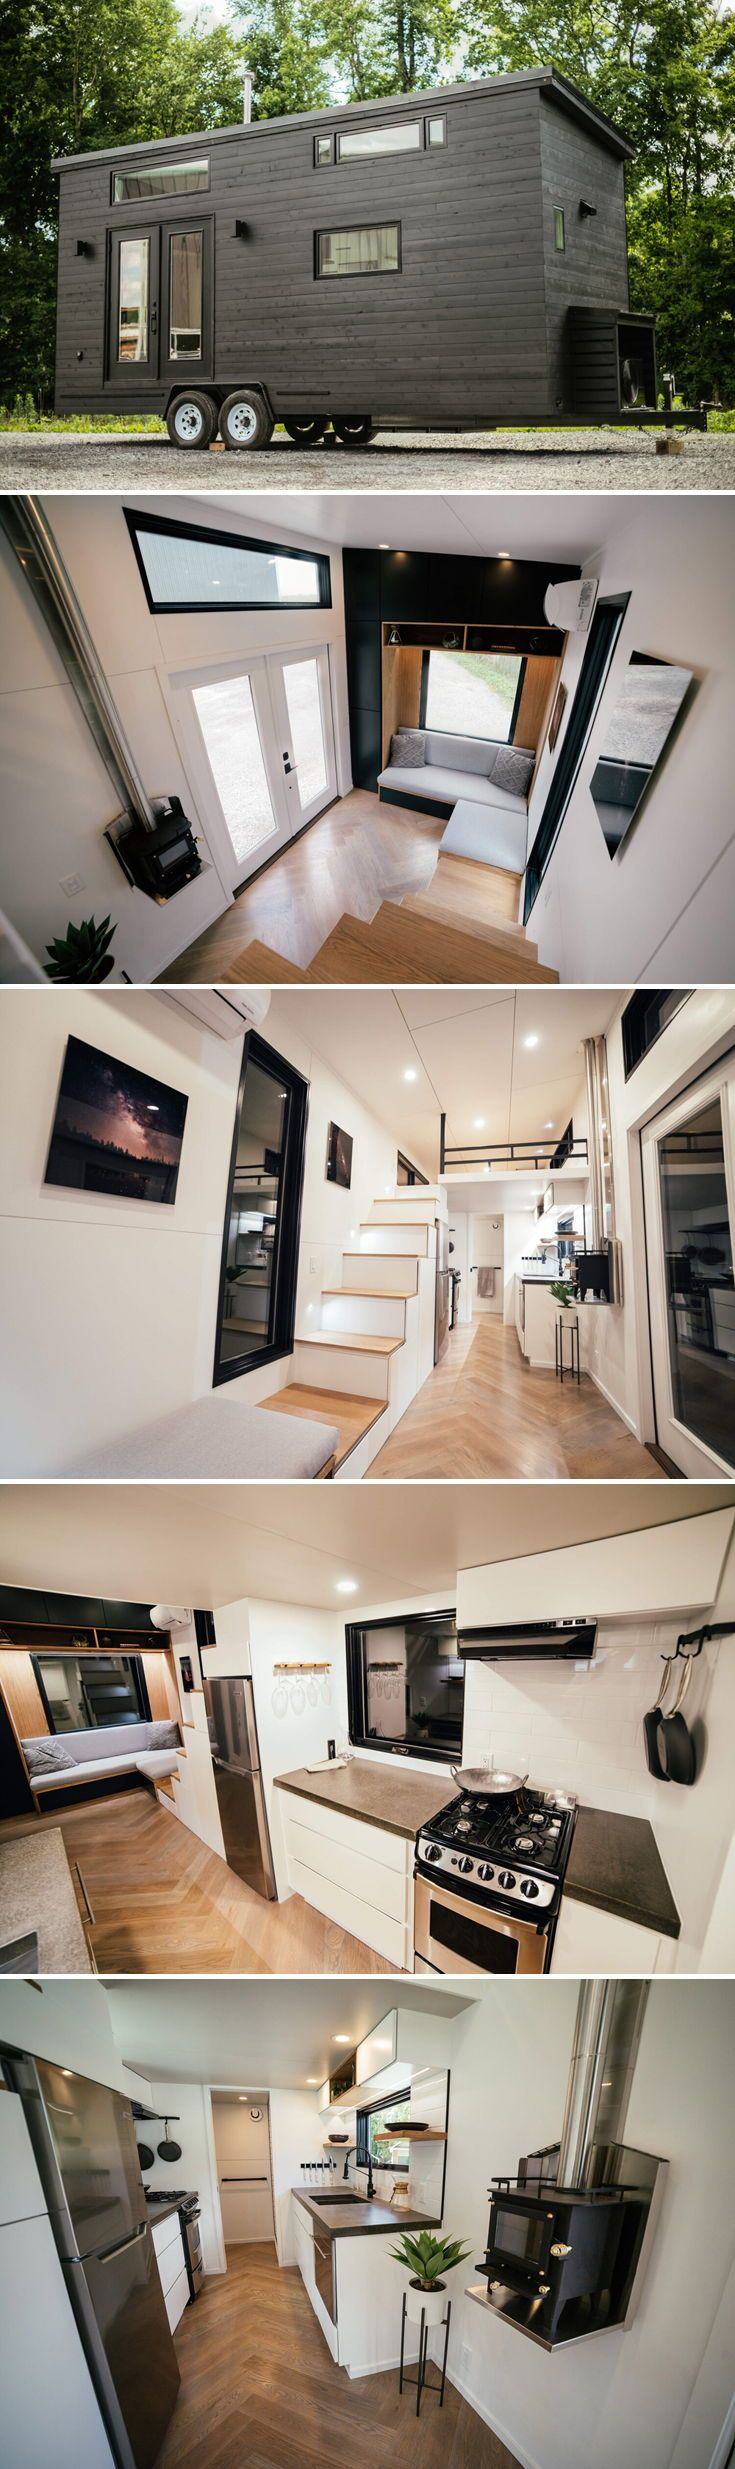 Kubrick by Wind River Tiny Homes - Tiny Living #tinyhomes